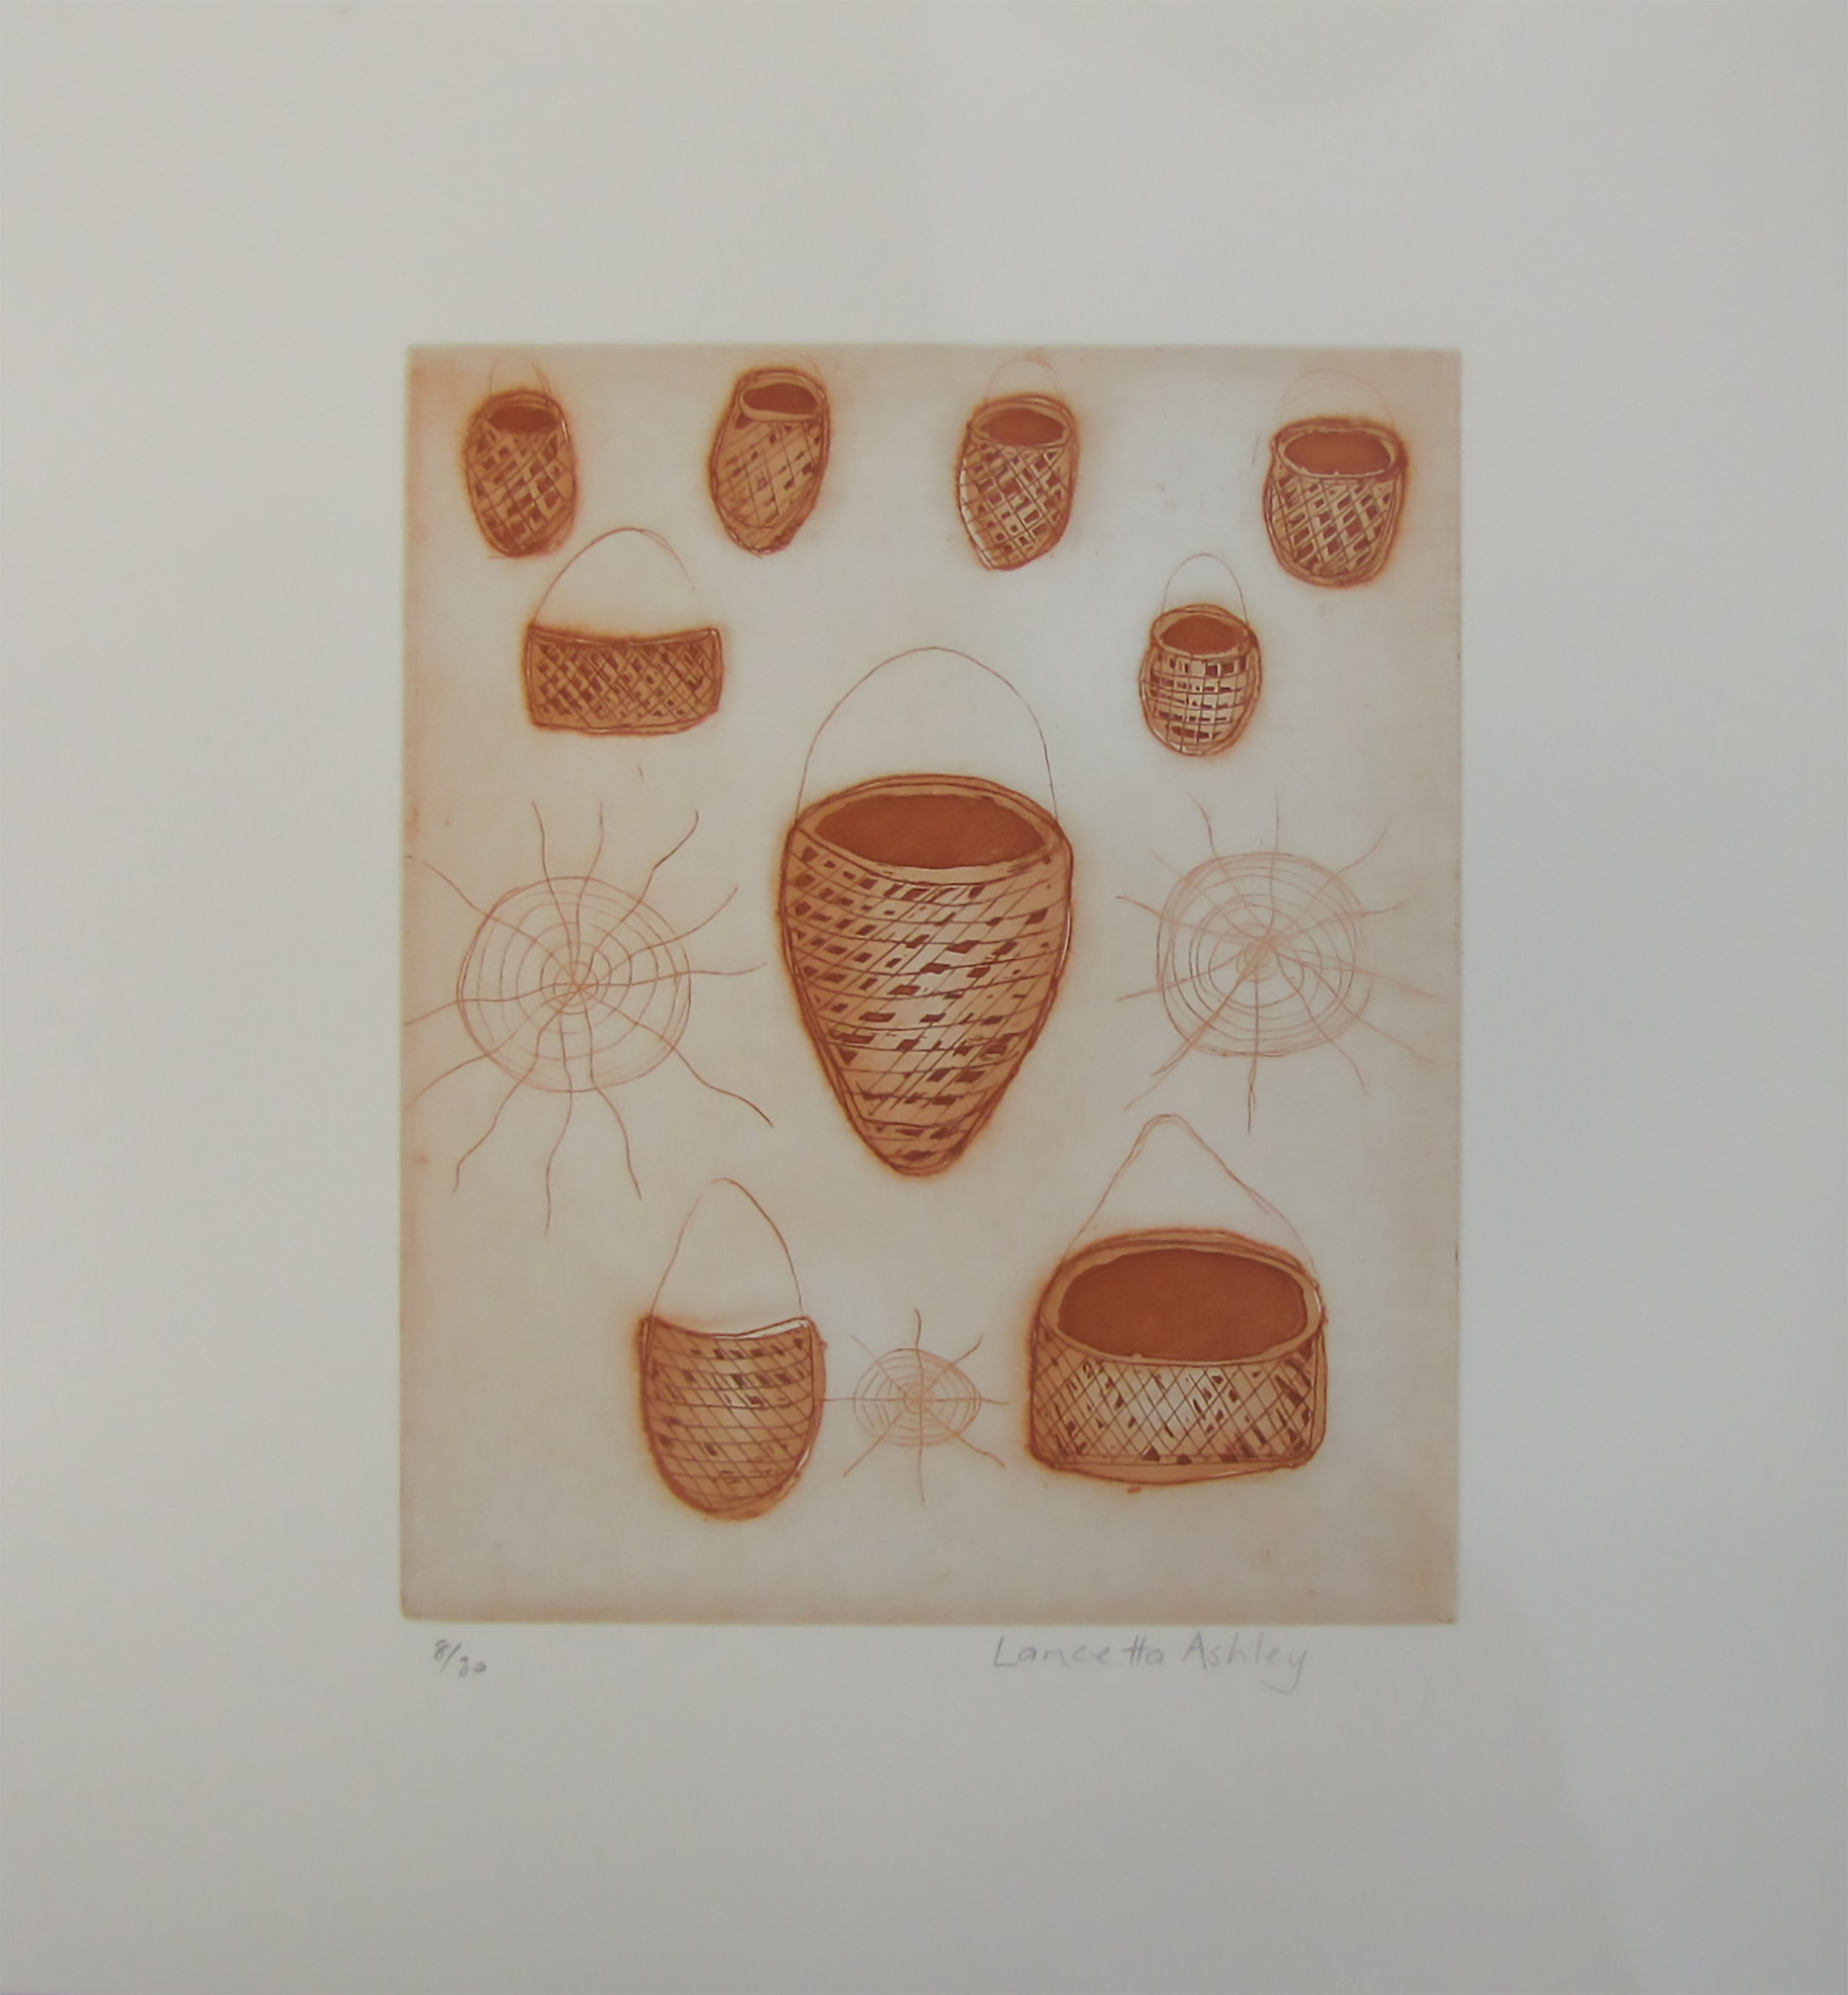 Lancetta Ashley, Baskets. 2016   Etching. Exhibition Proof   24.5 x 19.5 cm. $220 unframed   Editions 3/30, 5/30, 6/30 & 8/30 (unframed) also available